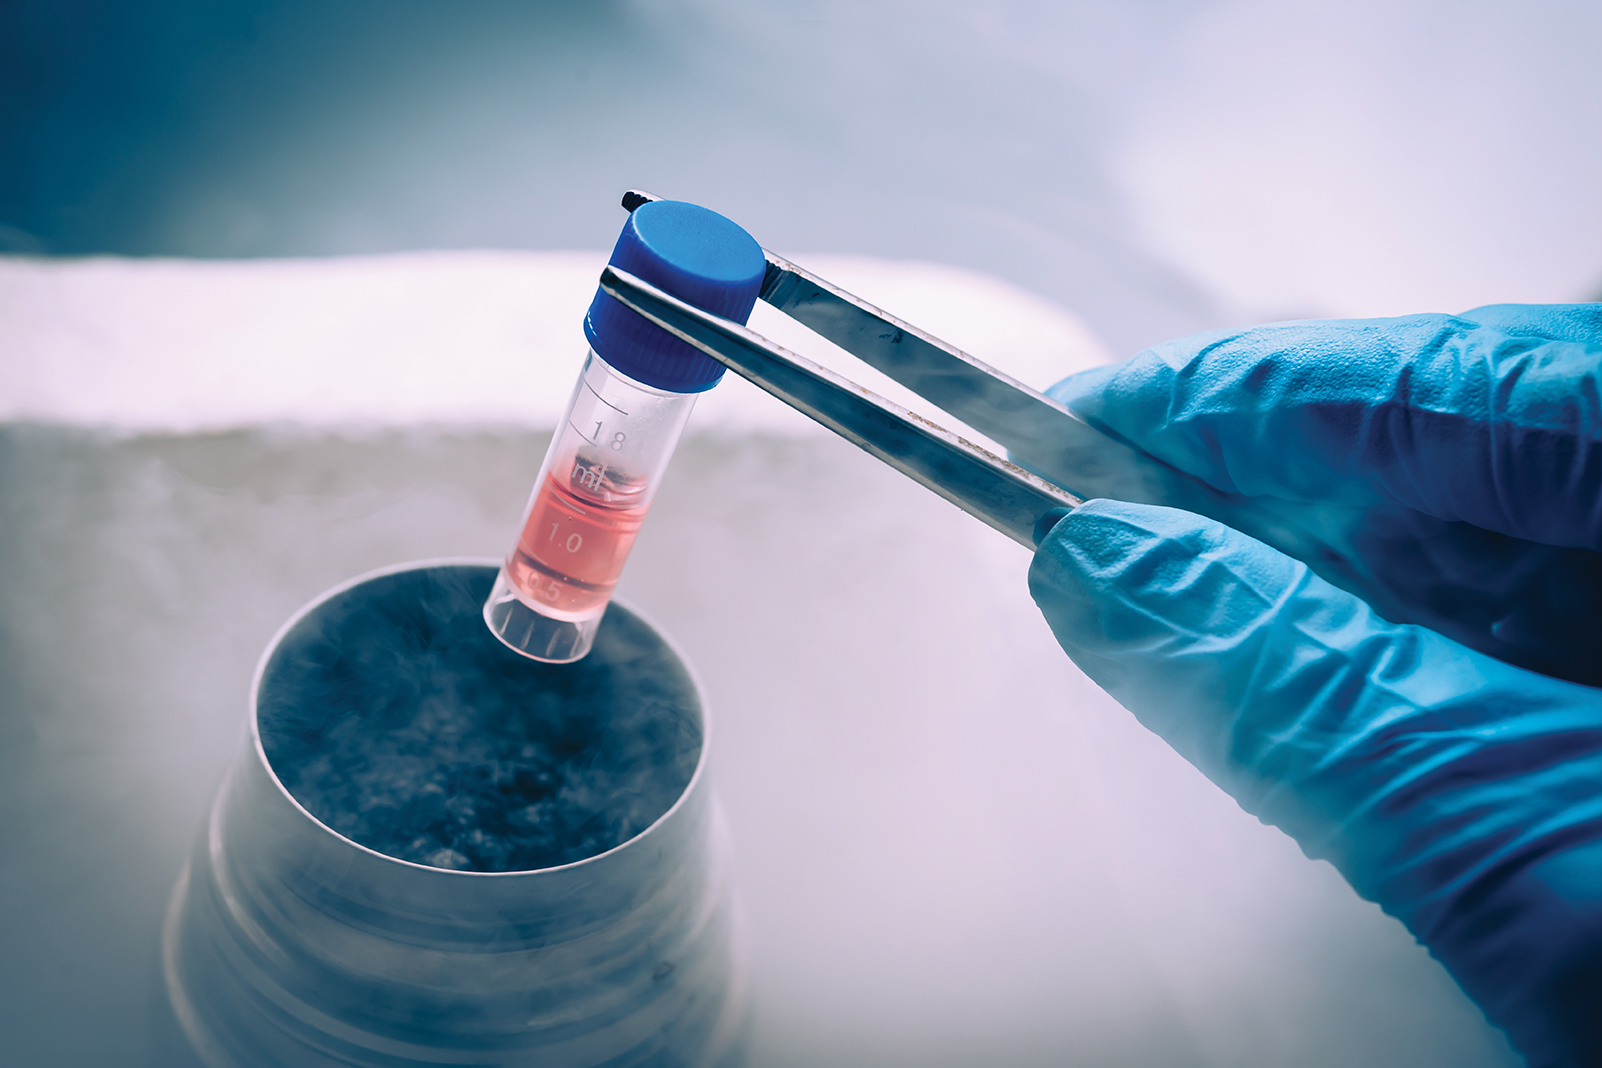 A sample enters cryopreservation